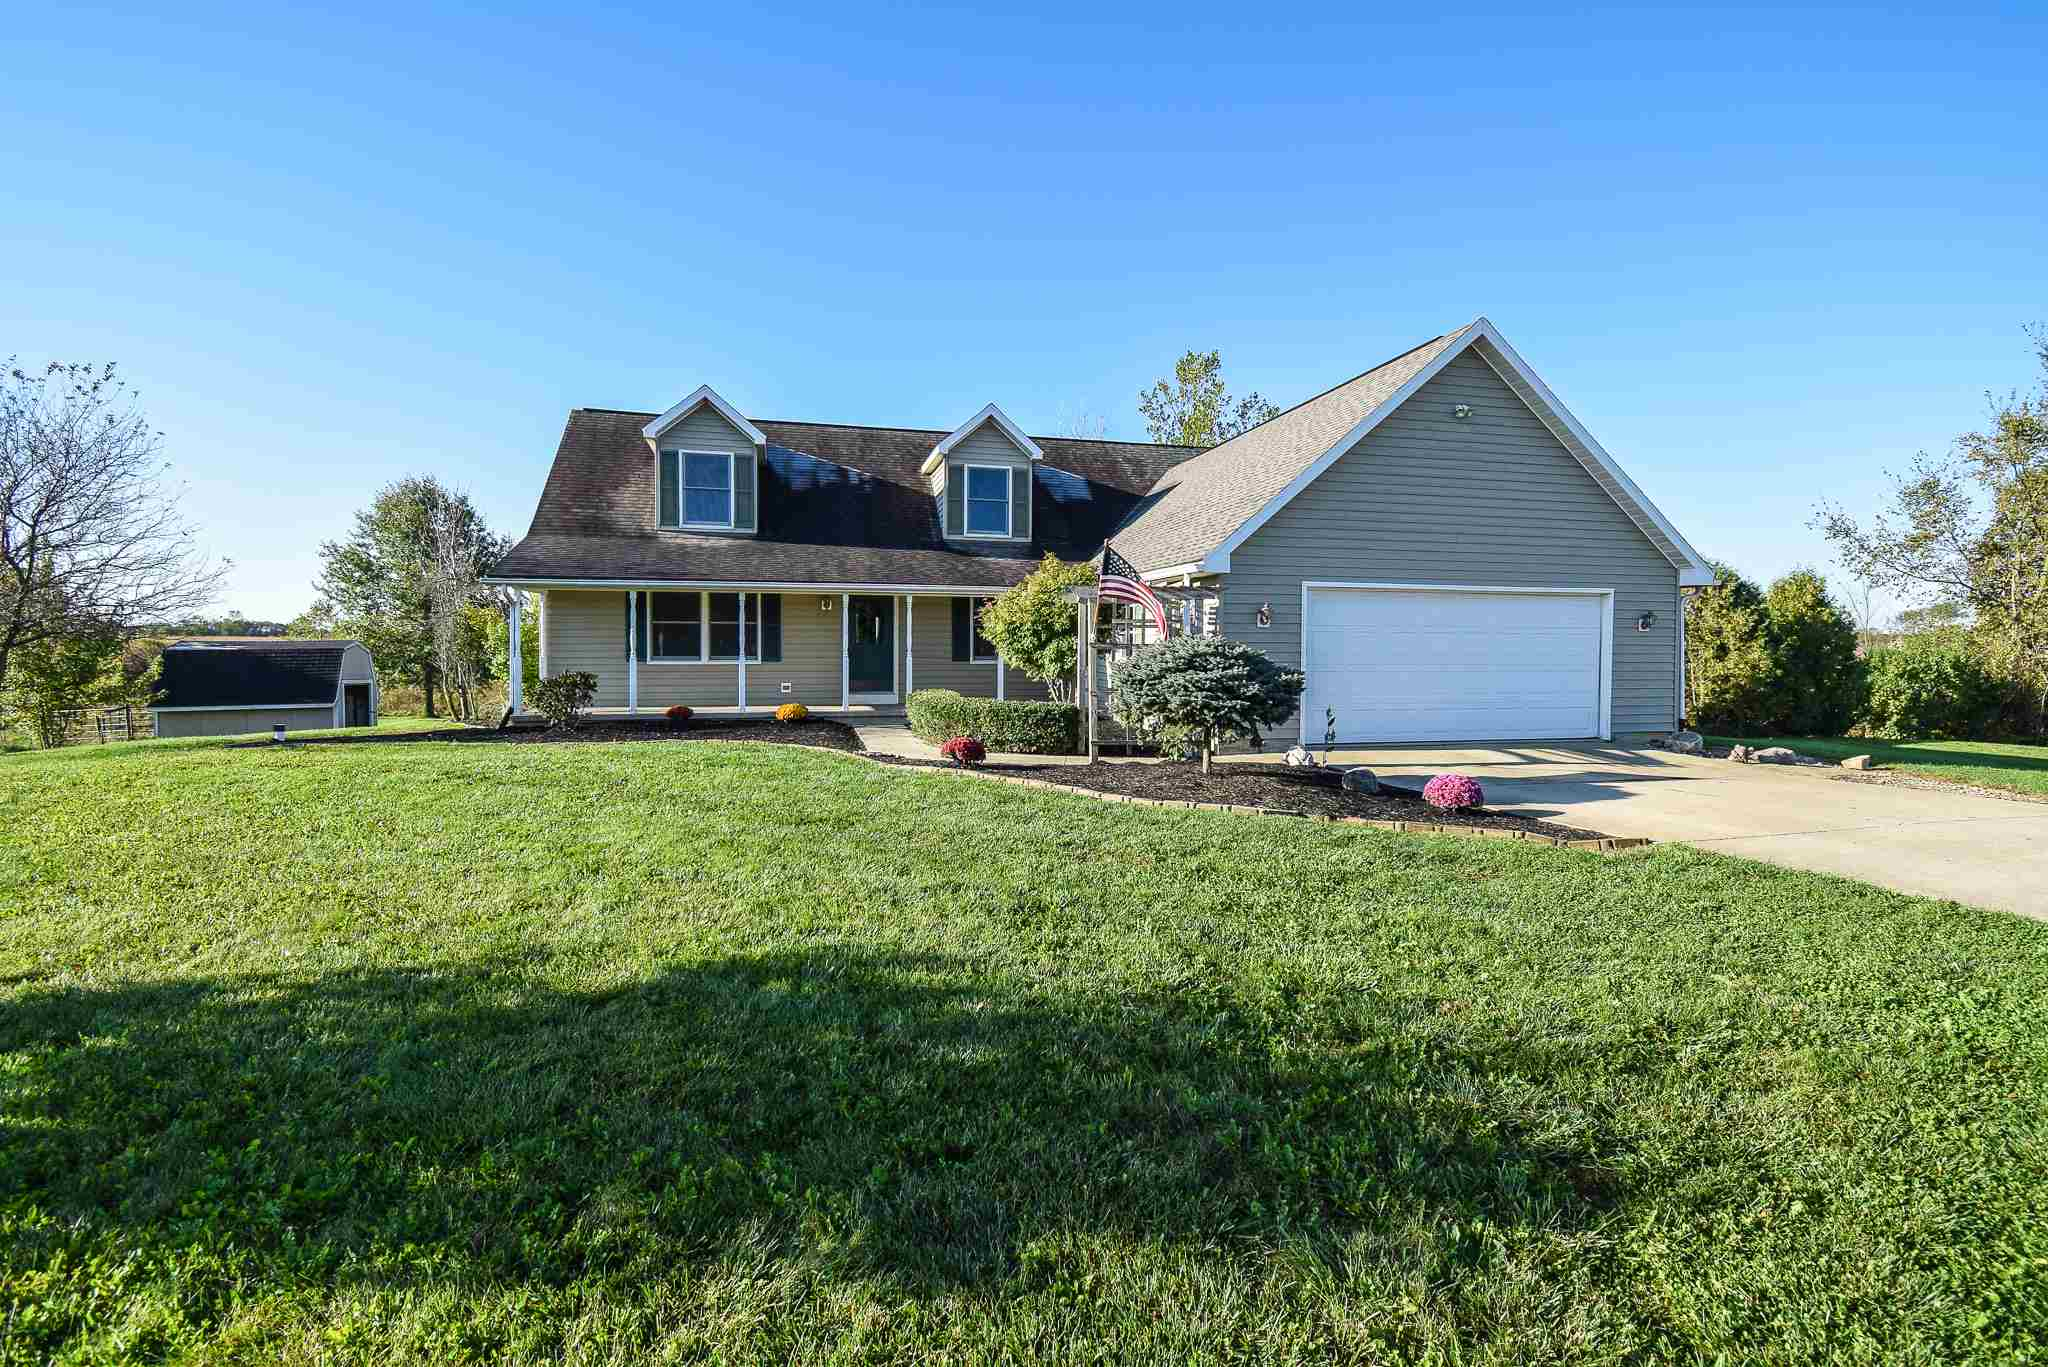 0285 W 200 S, Albion, IN 46701